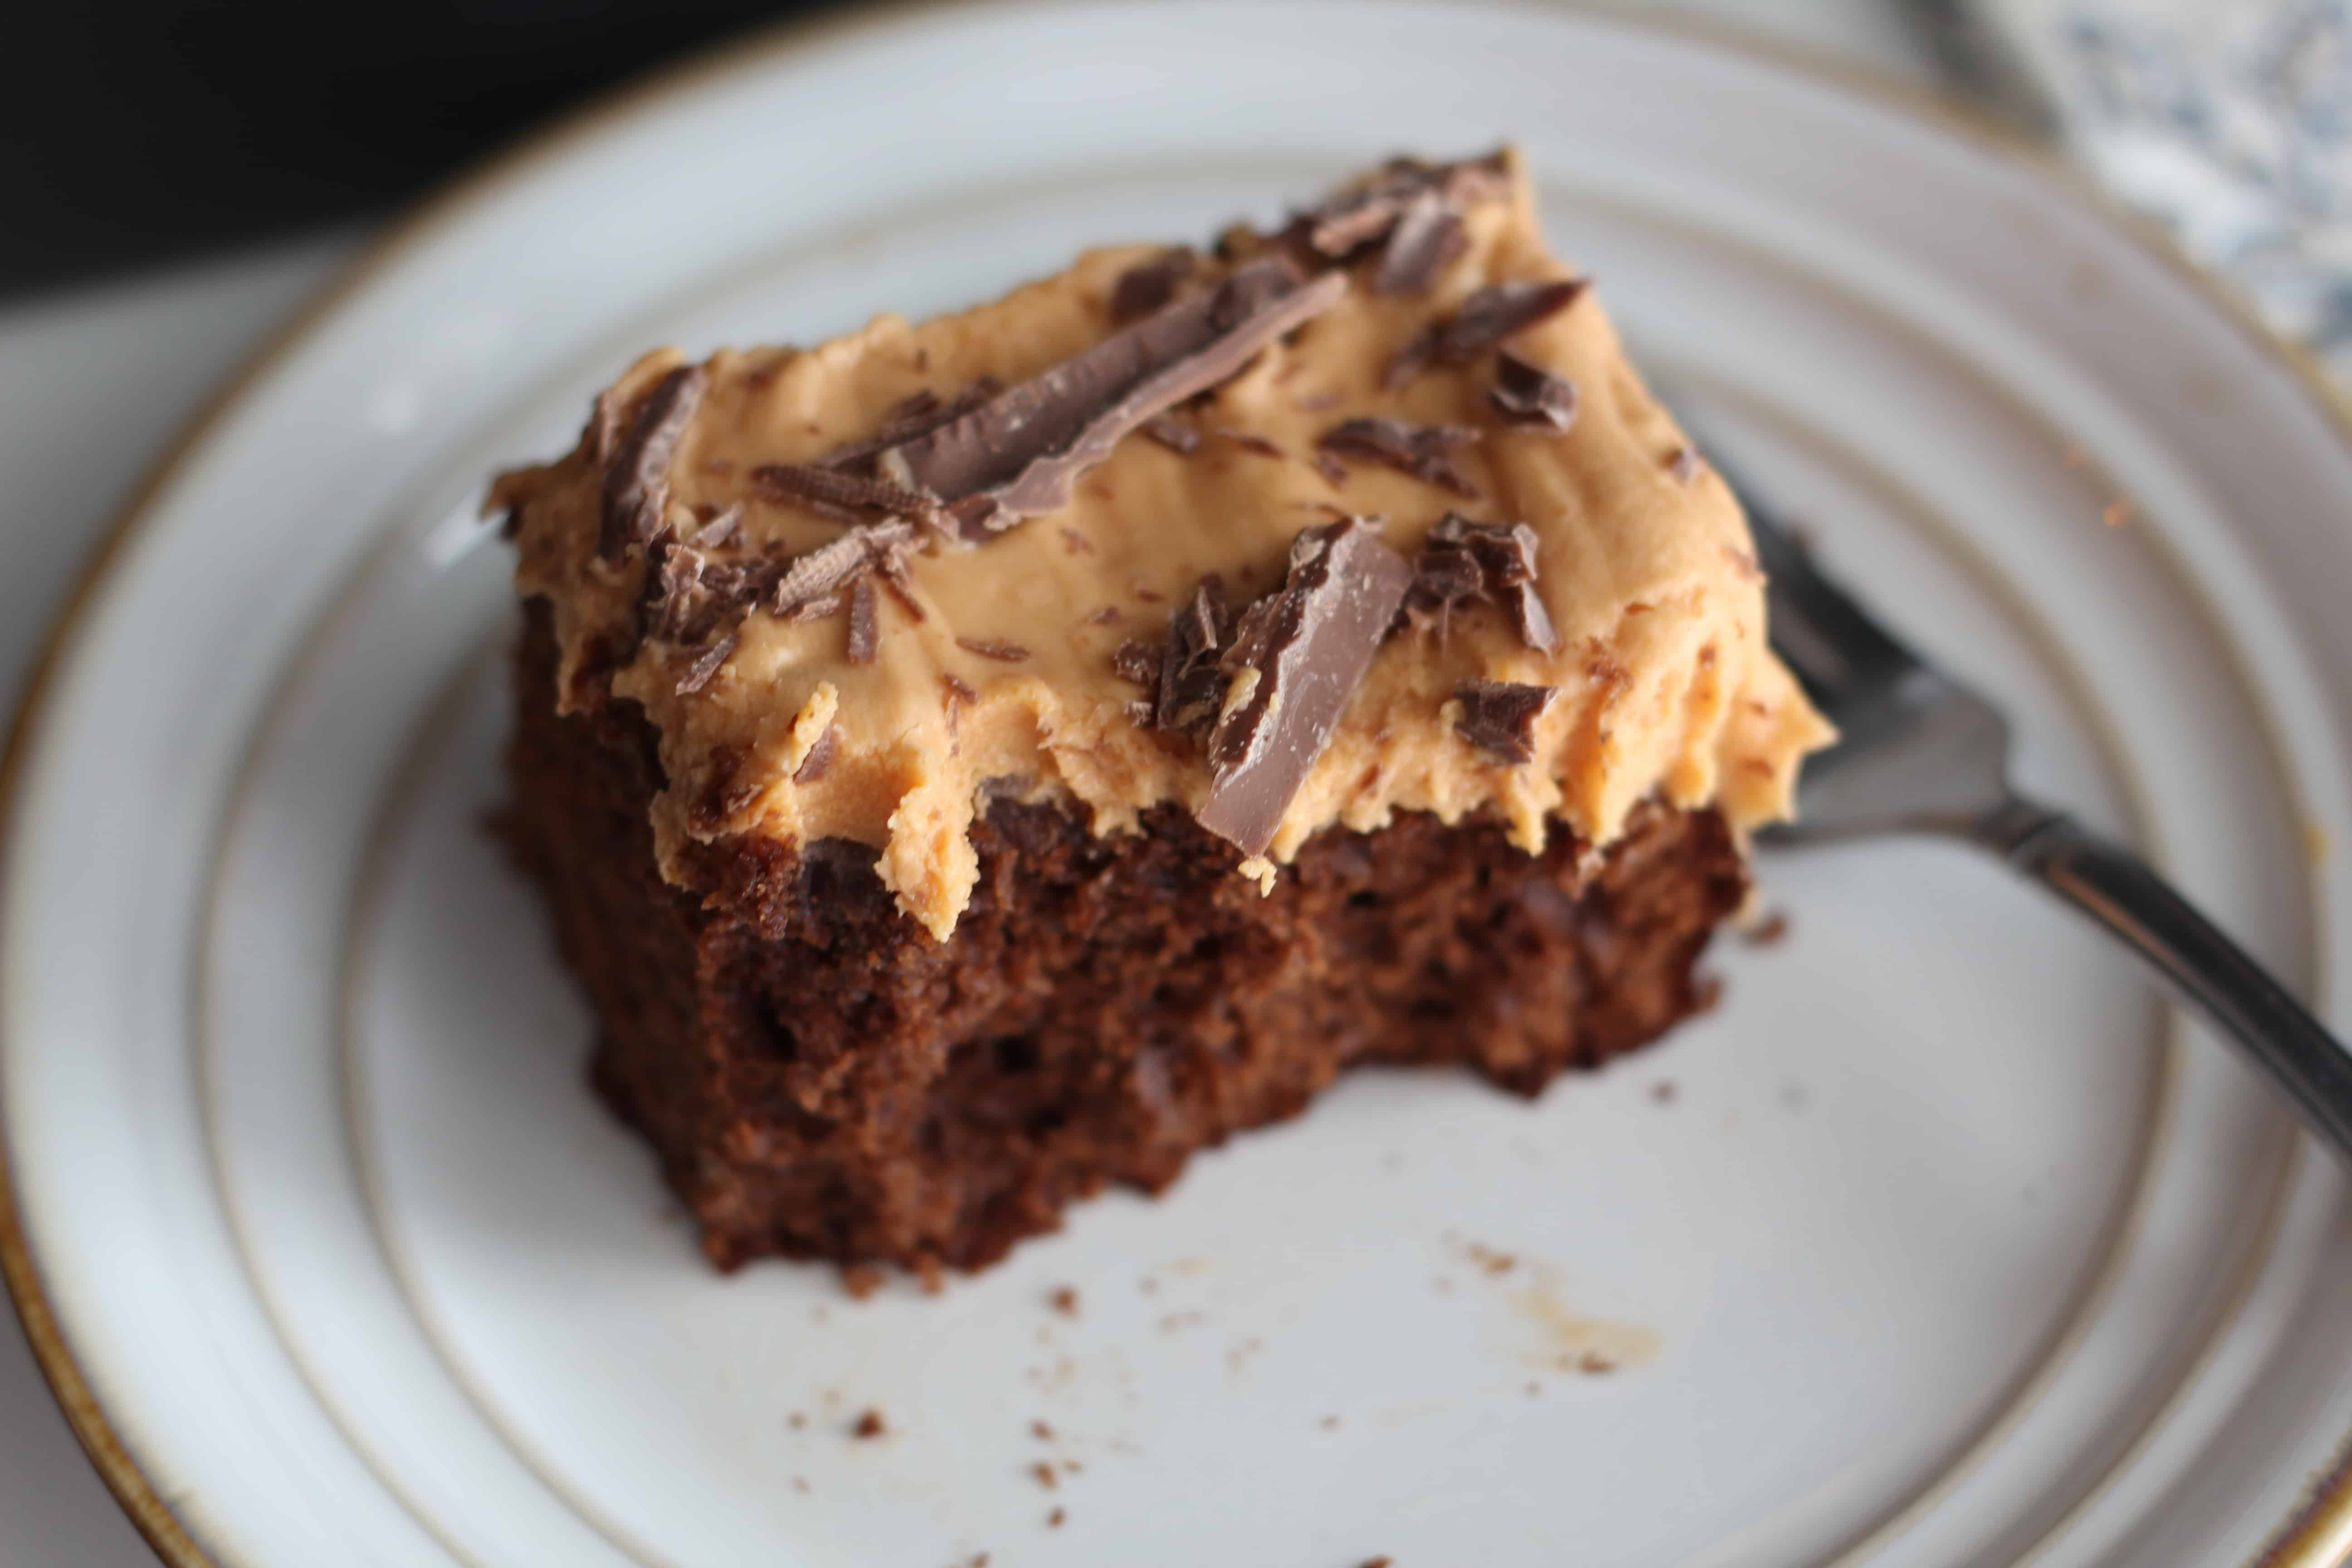 Butterscotch Toffee Chocolate Cake